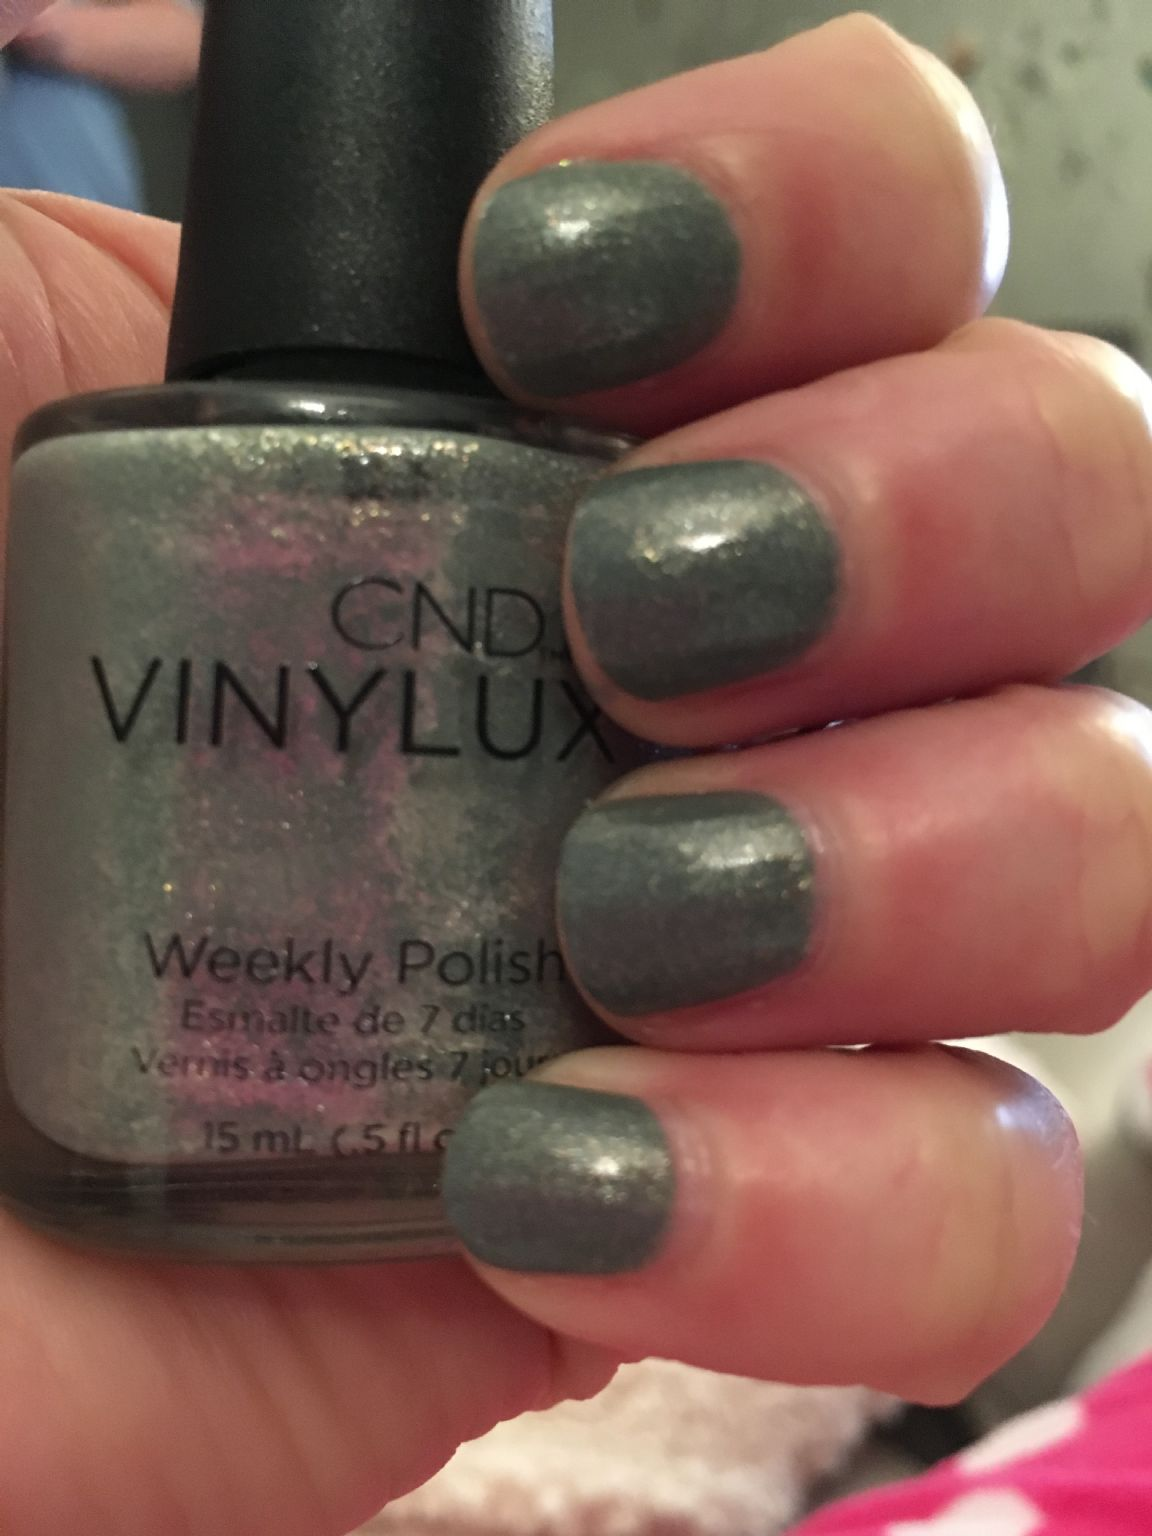 Creative Nail Design Vinylux - Wild Moss reviews, photos - MakeupAlley